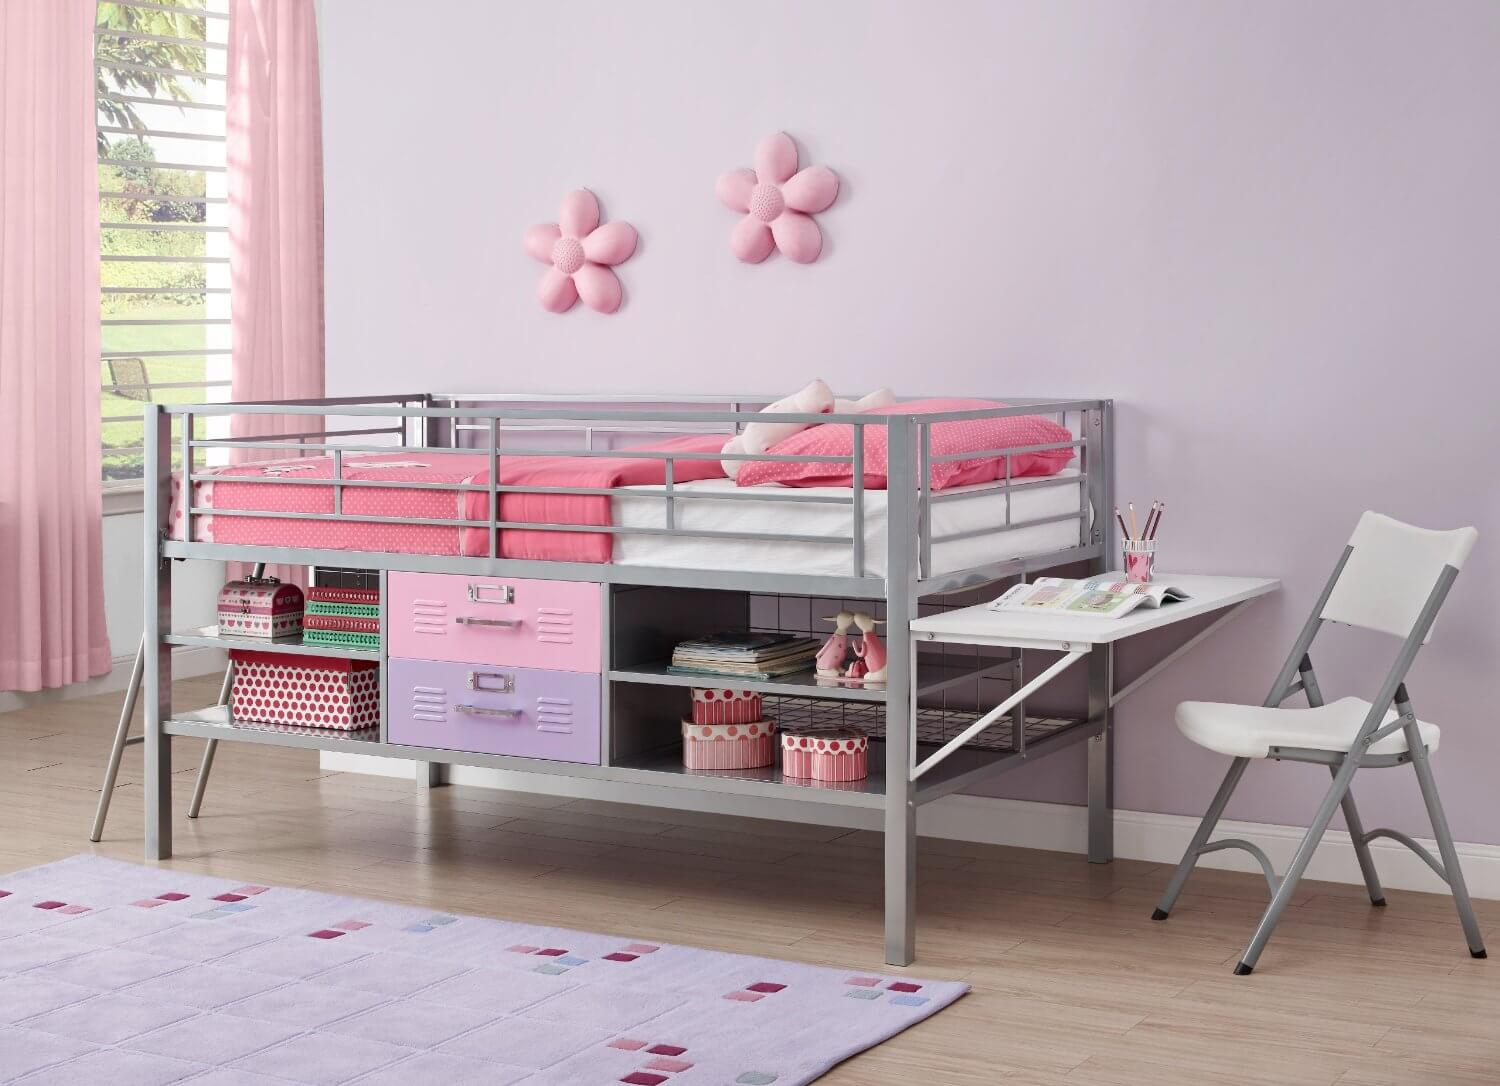 Cheap Bunk Beds Loft Beds For Kids With Desk For A Price You Can Afford